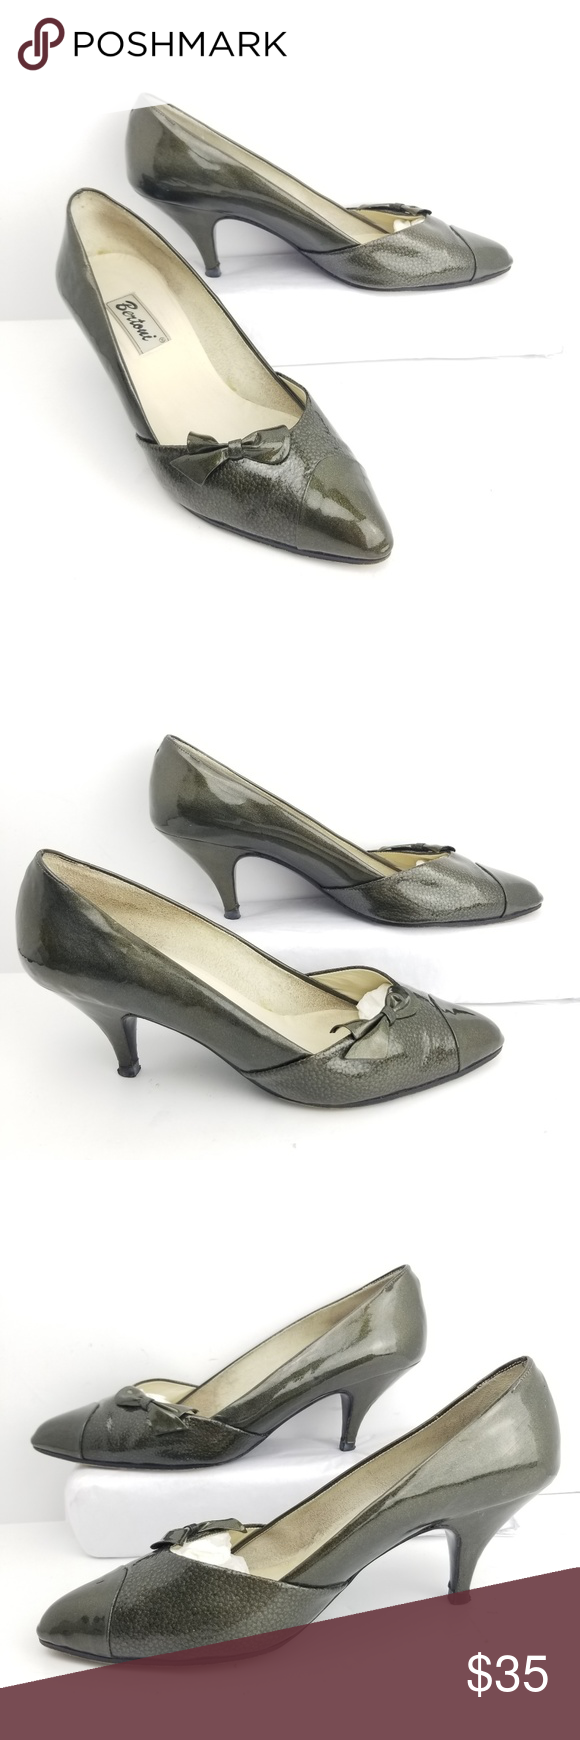 Bertoni Kitten Heels Size 8 Green Cap Toe Pumps Heel 2 5 Width 3 Length 10 They Size Is Worn Off I Wear A 9 And These Are Ab Kitten Heels Heels Pumps Heels